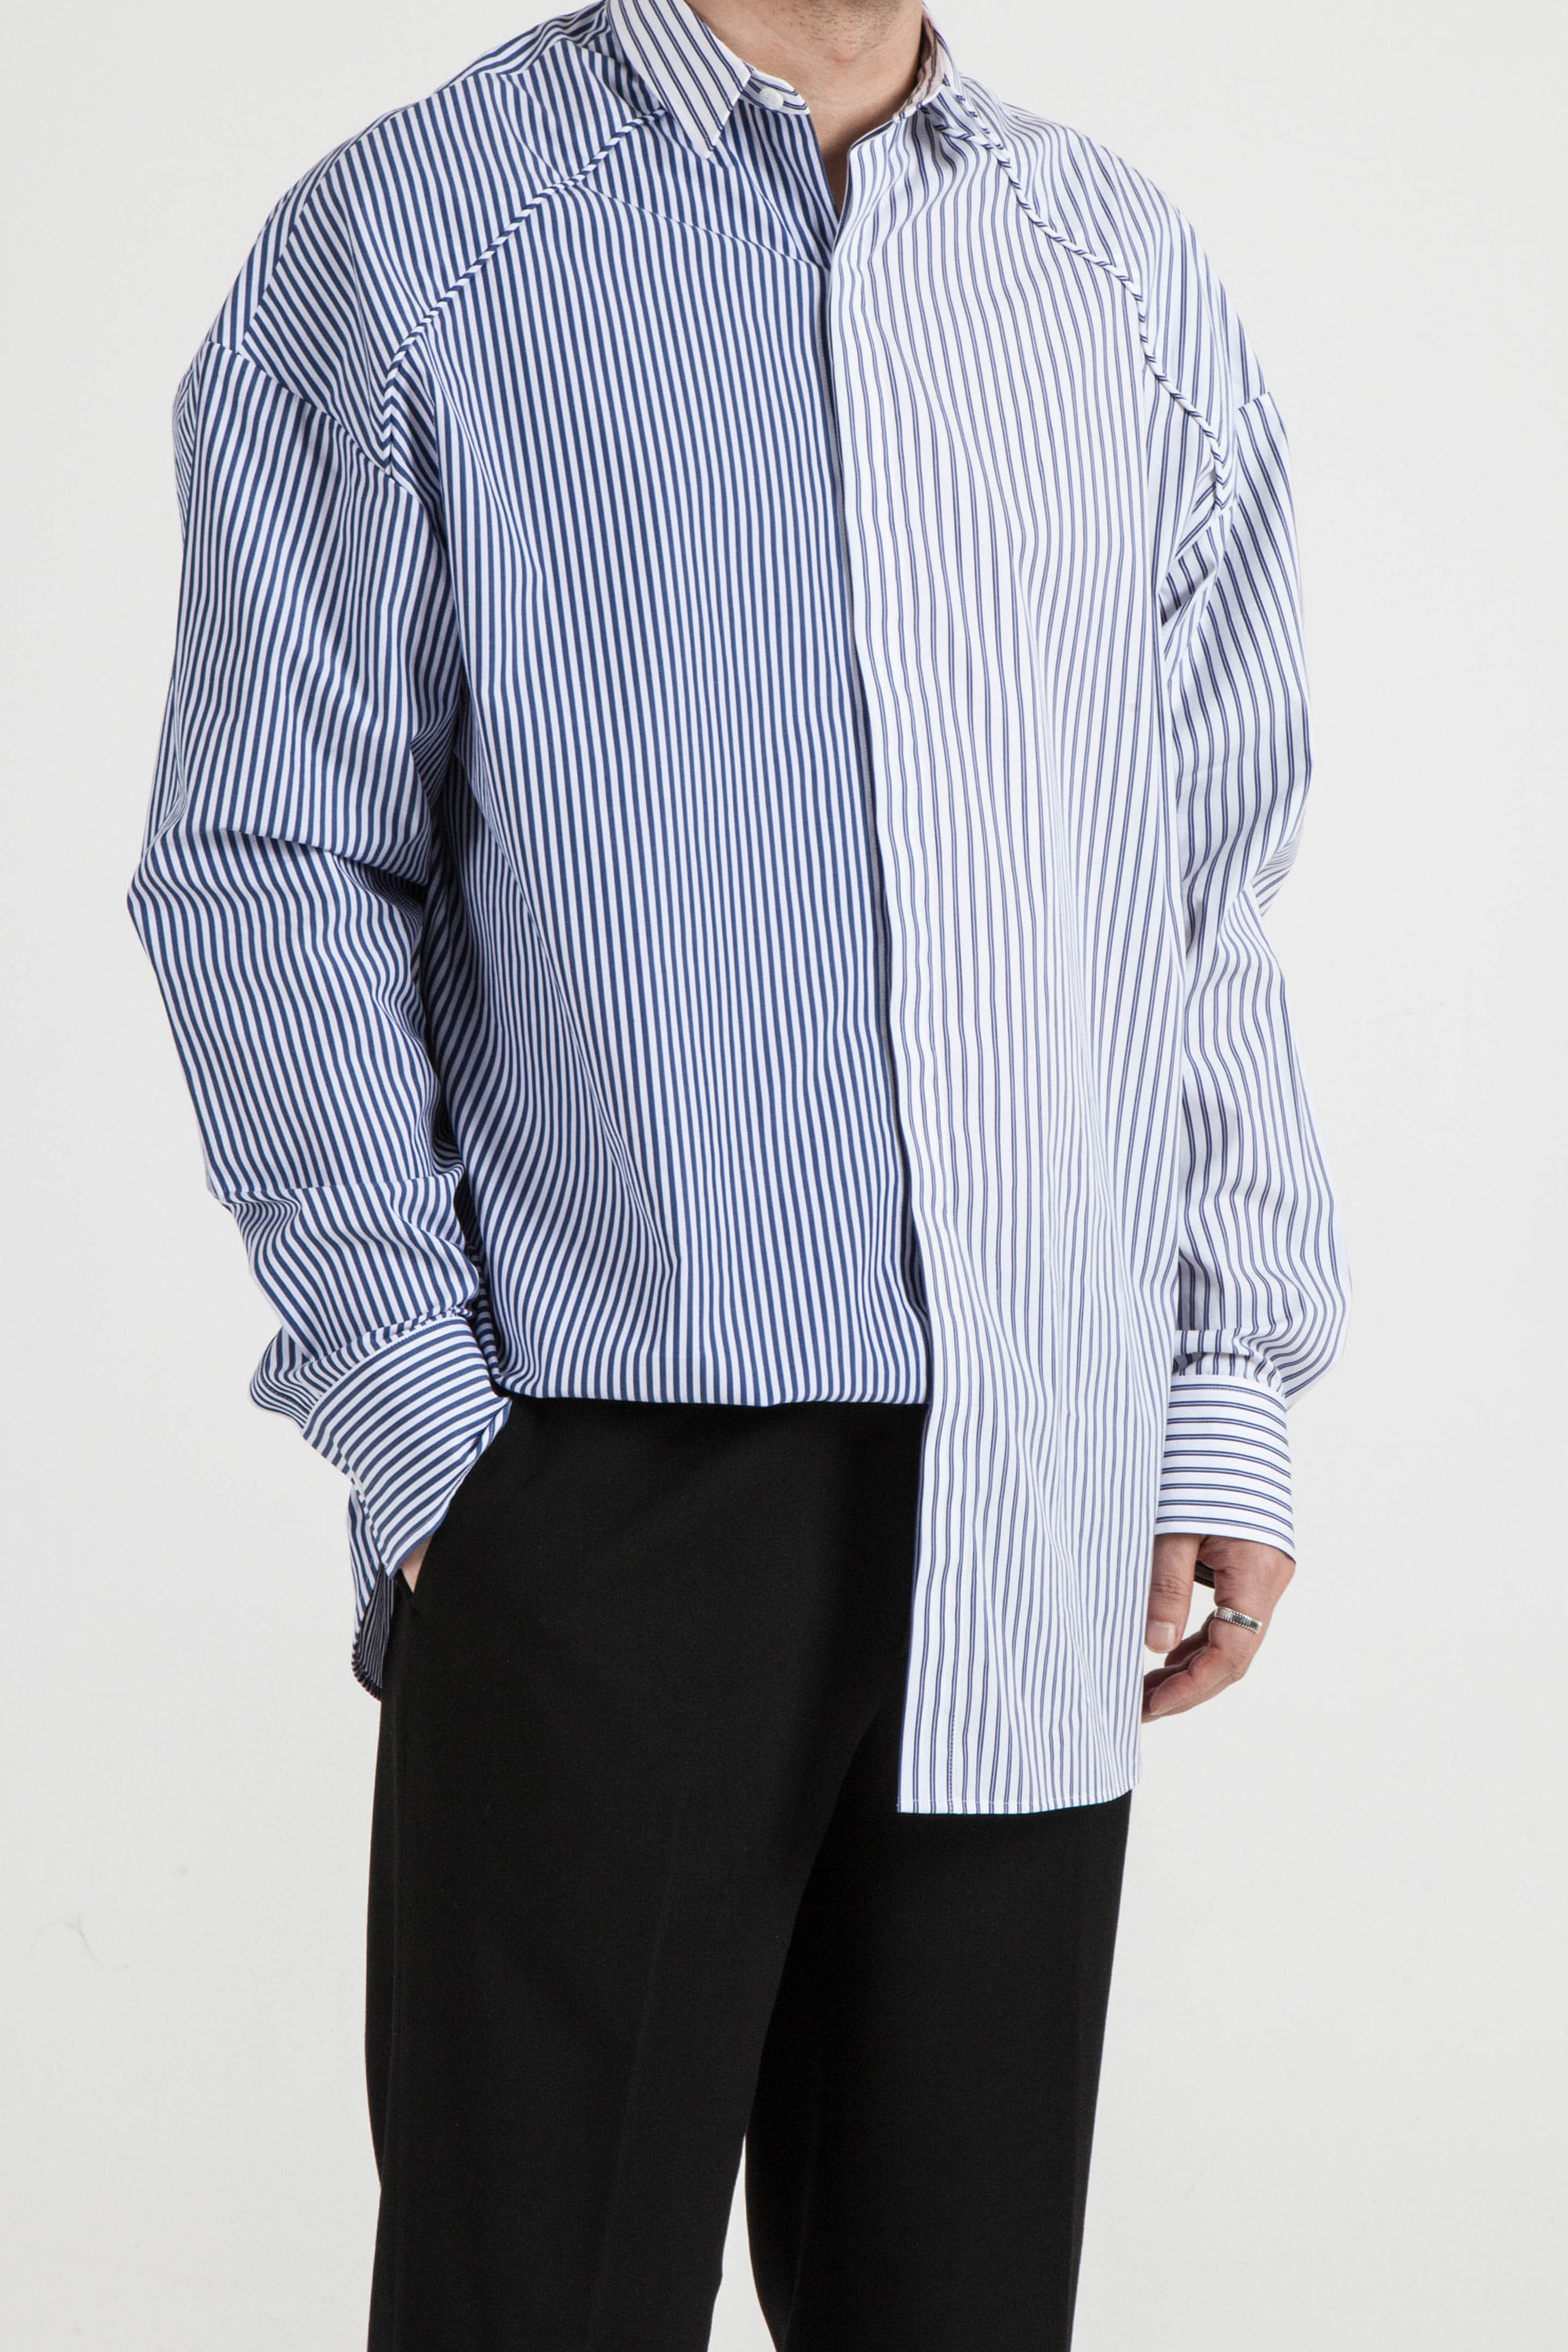 HALF & HALF Stripe BACK LETTERING OVER-FIT SHIRTS